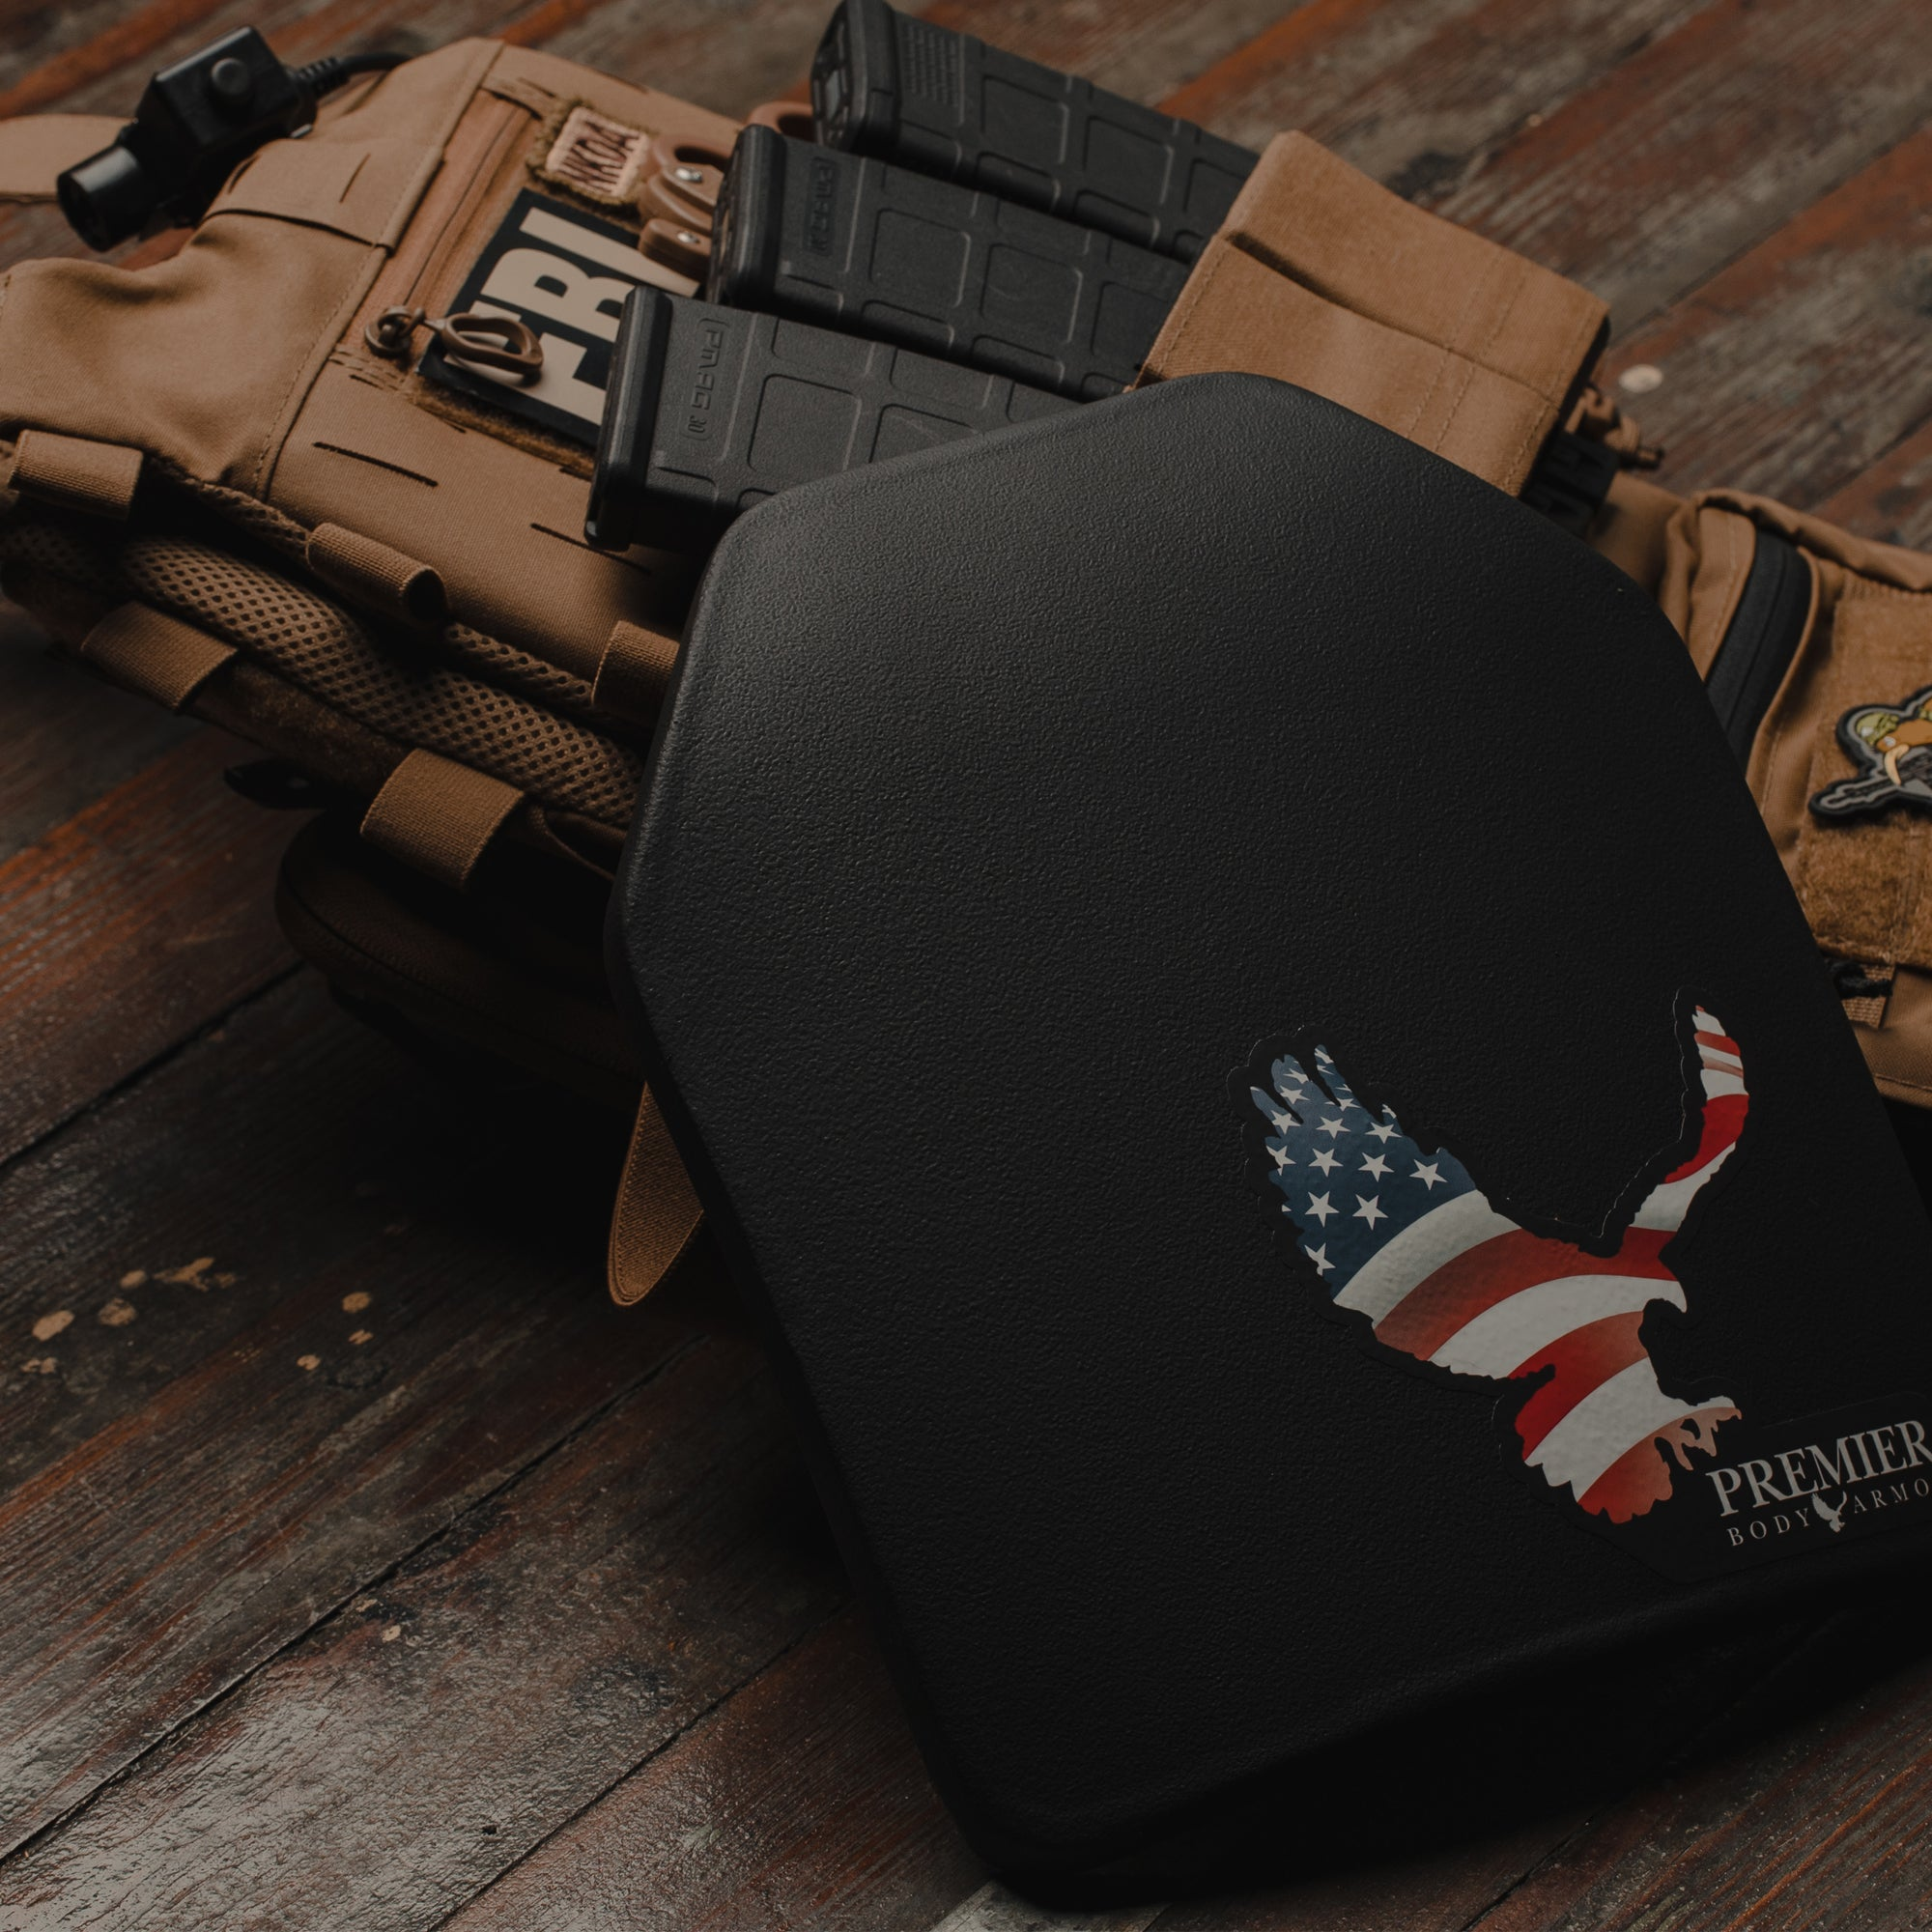 Shop our selection of Level 3 Body Armor and Level 4 body armor plates. We use UHMWPE to make lightweight body armor plates.